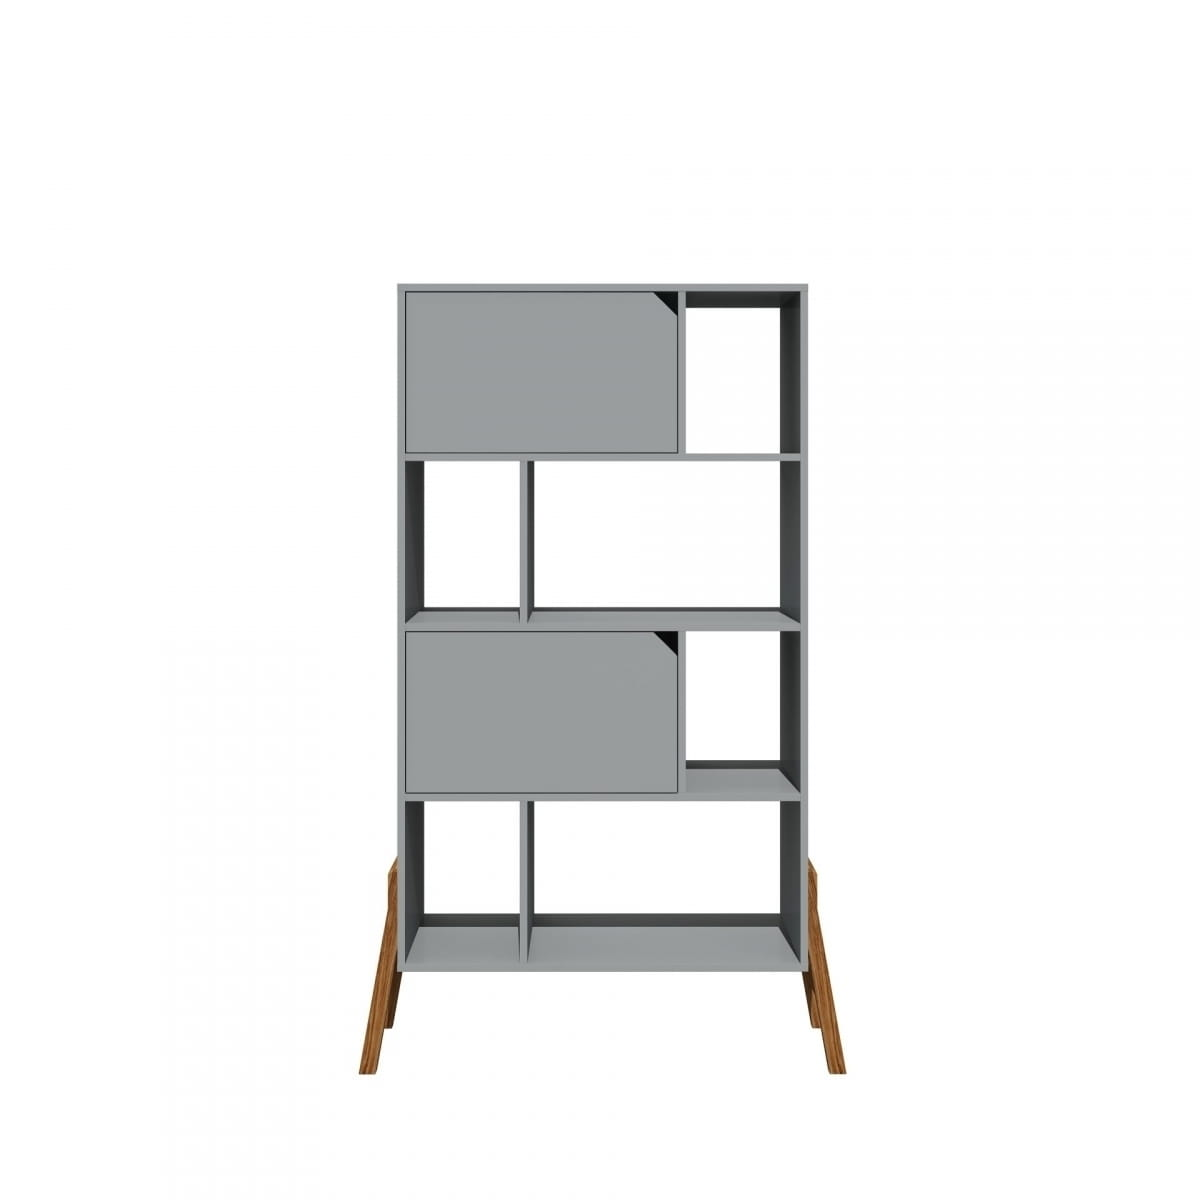 Lotta_gray_bookcase_01.jpg